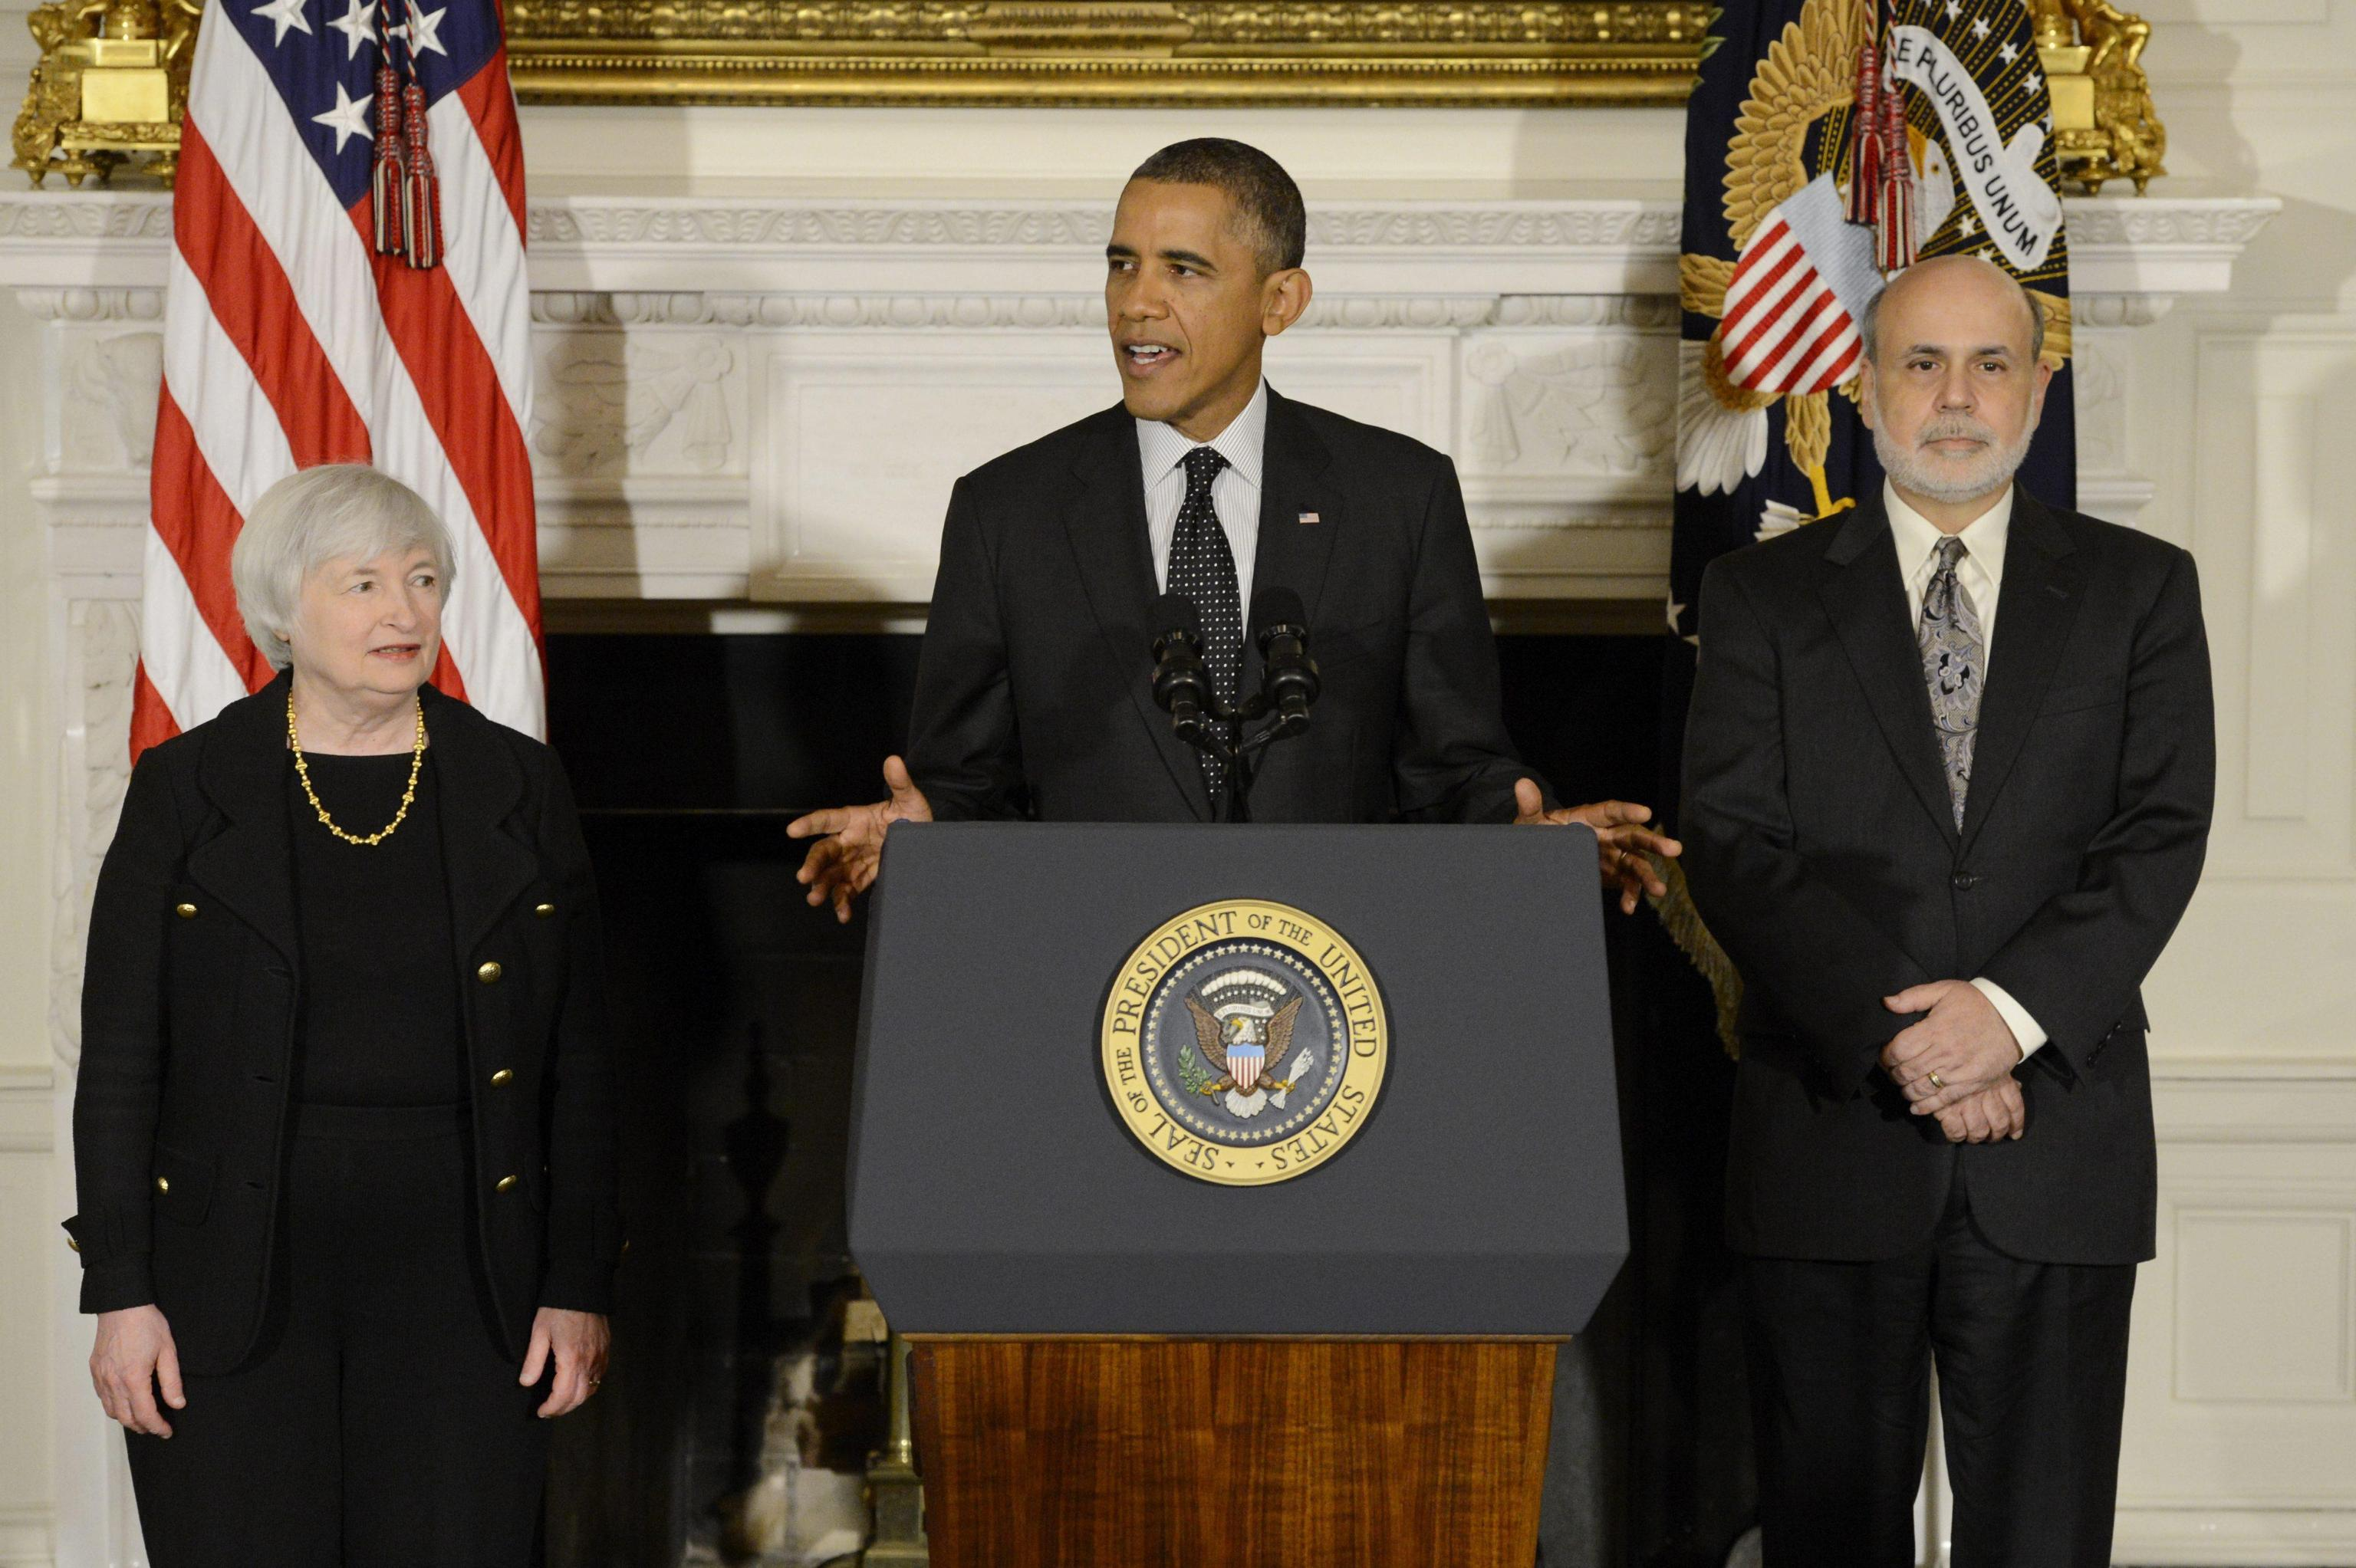 US President Barack Obama announces his nomination of Janet Yellen to be Chair of the Board of Governors of the Federal Reserve System